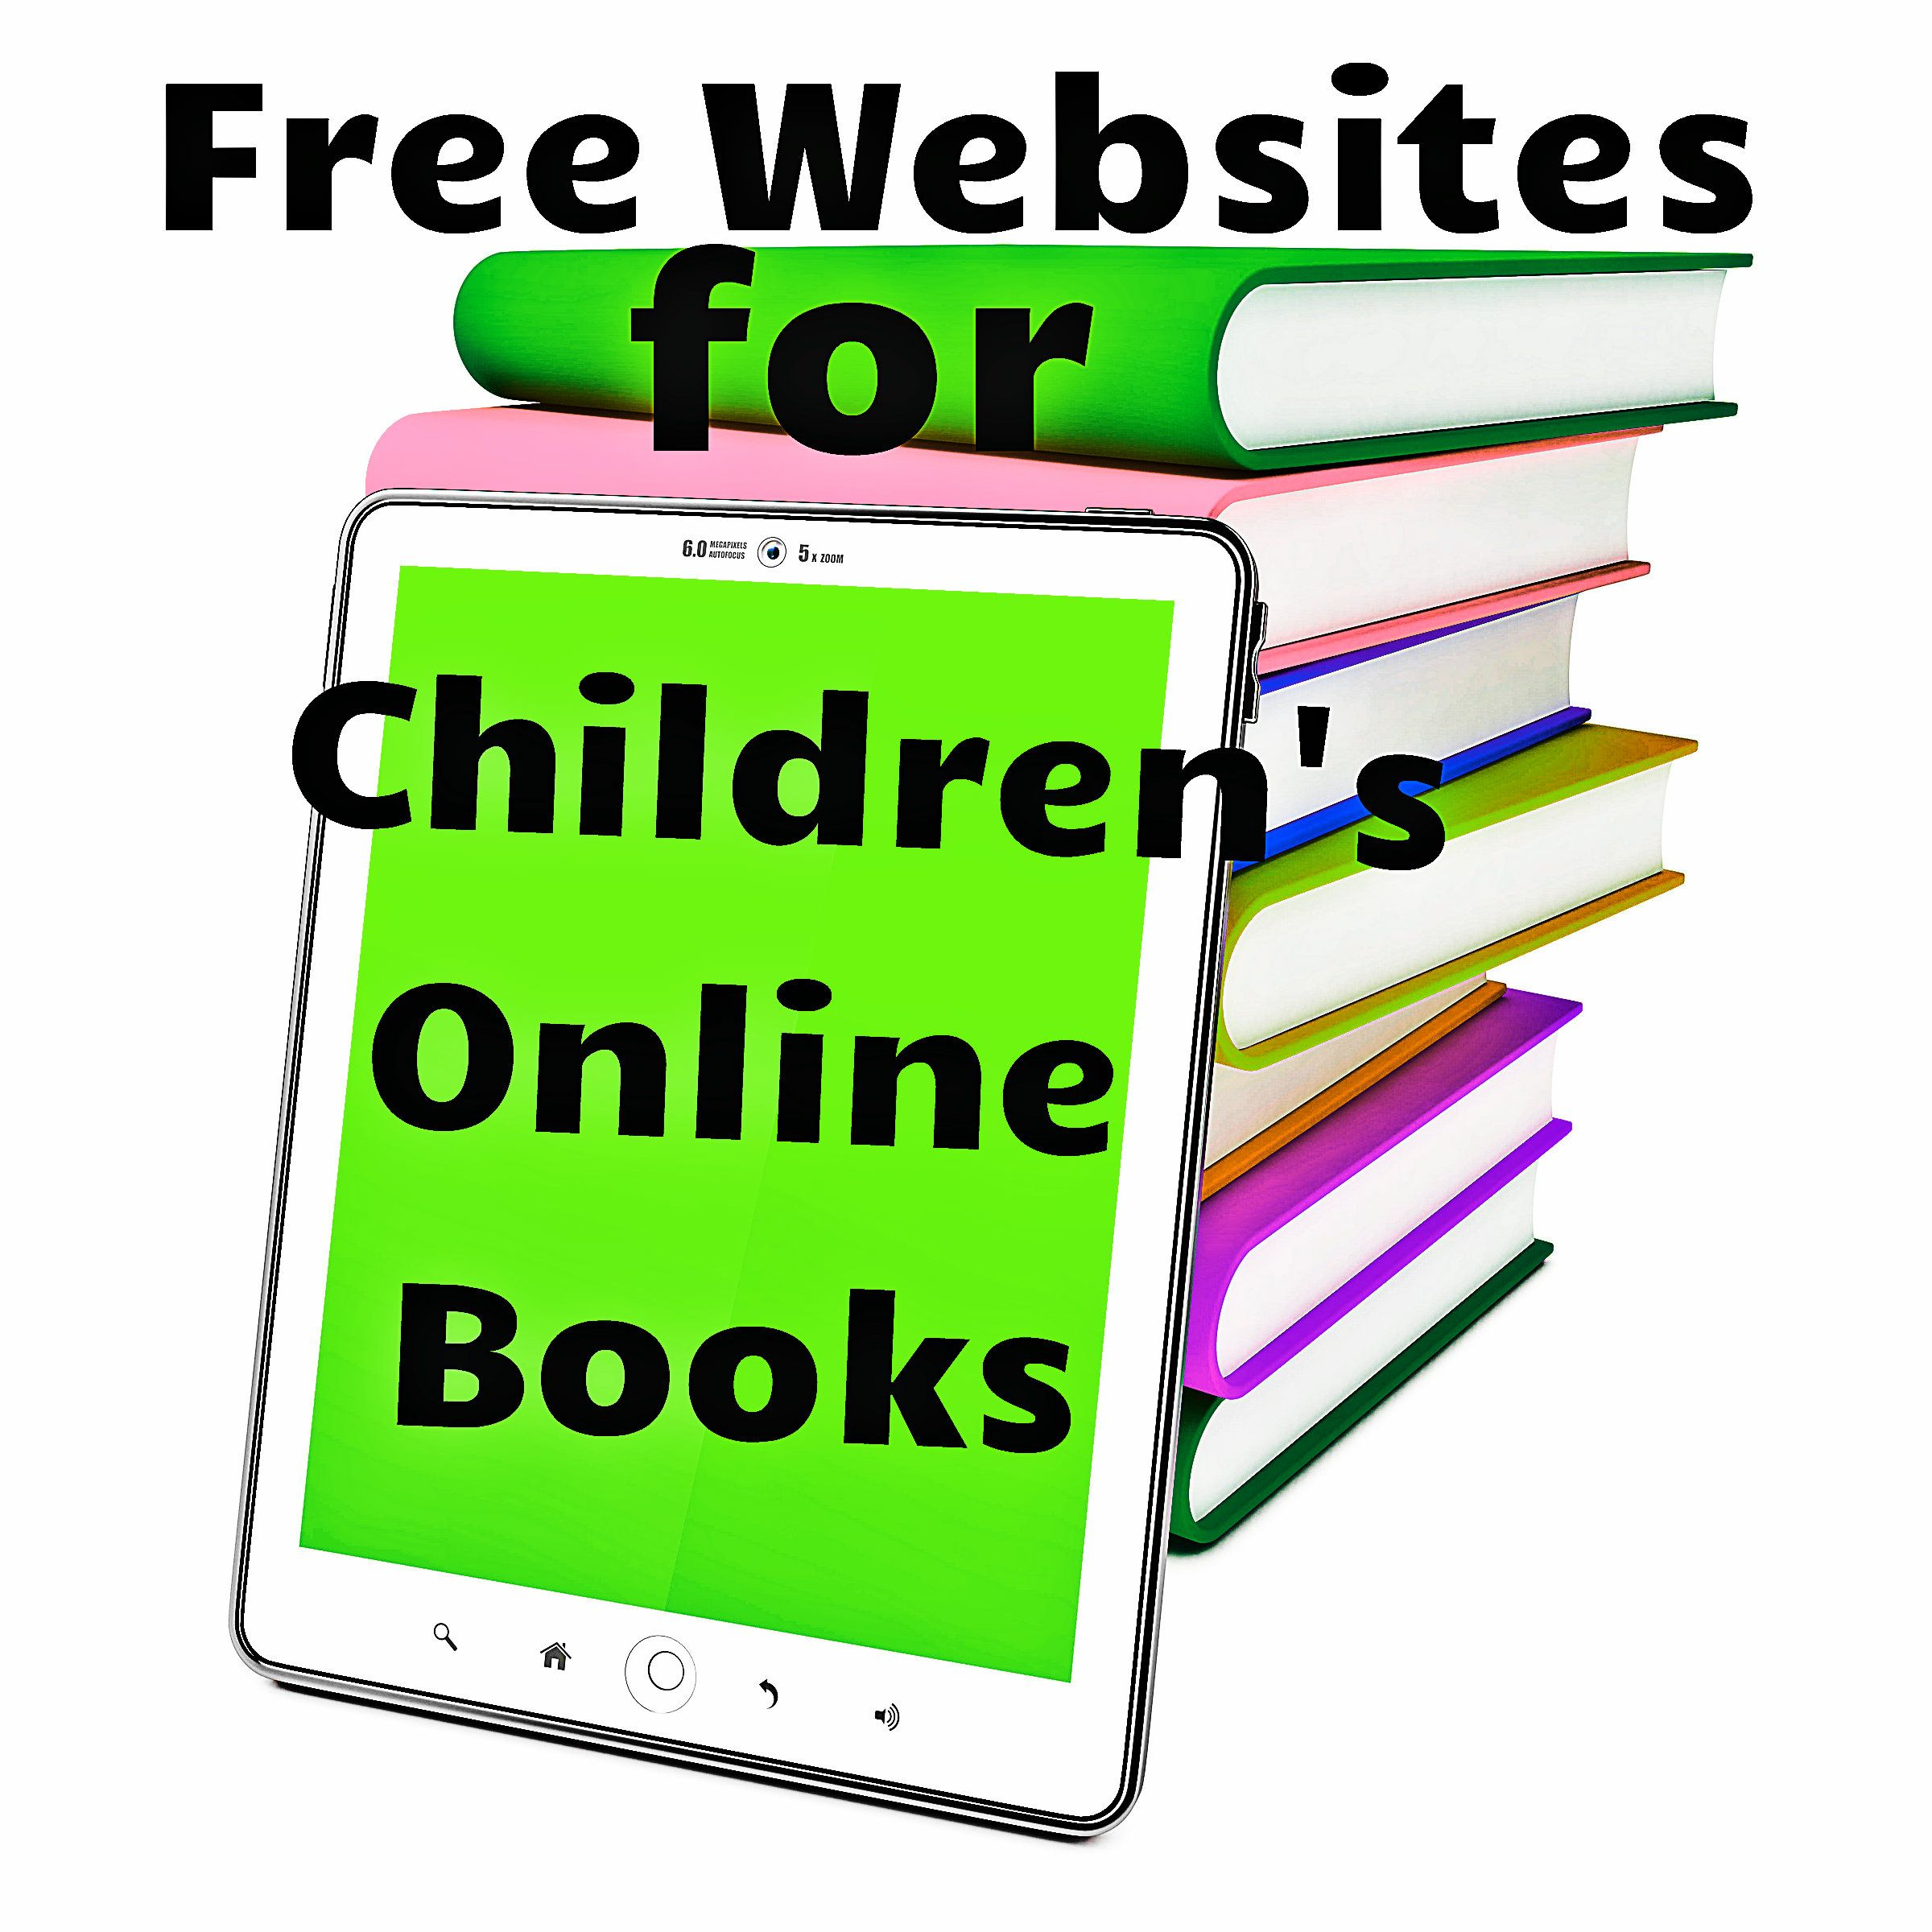 Sites for Children's Online Books (With images) Online